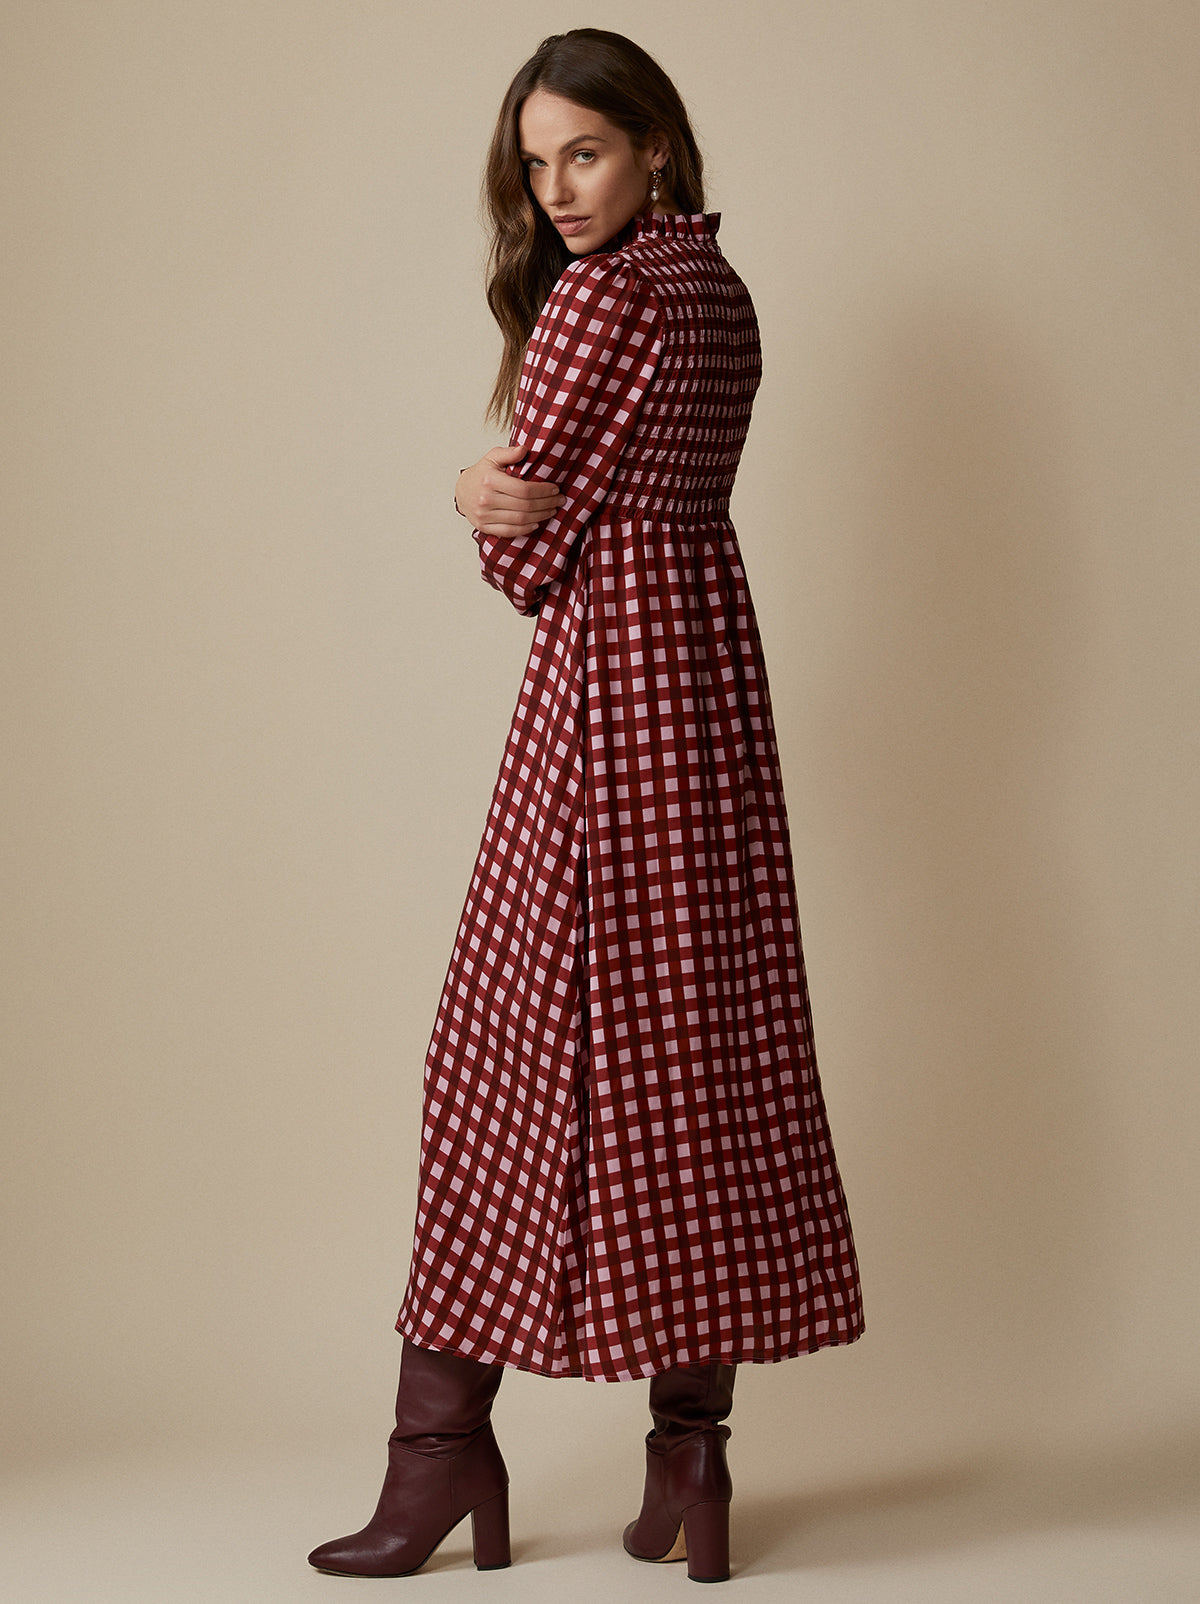 Molly Pink Checked Dress by KITRI Studio